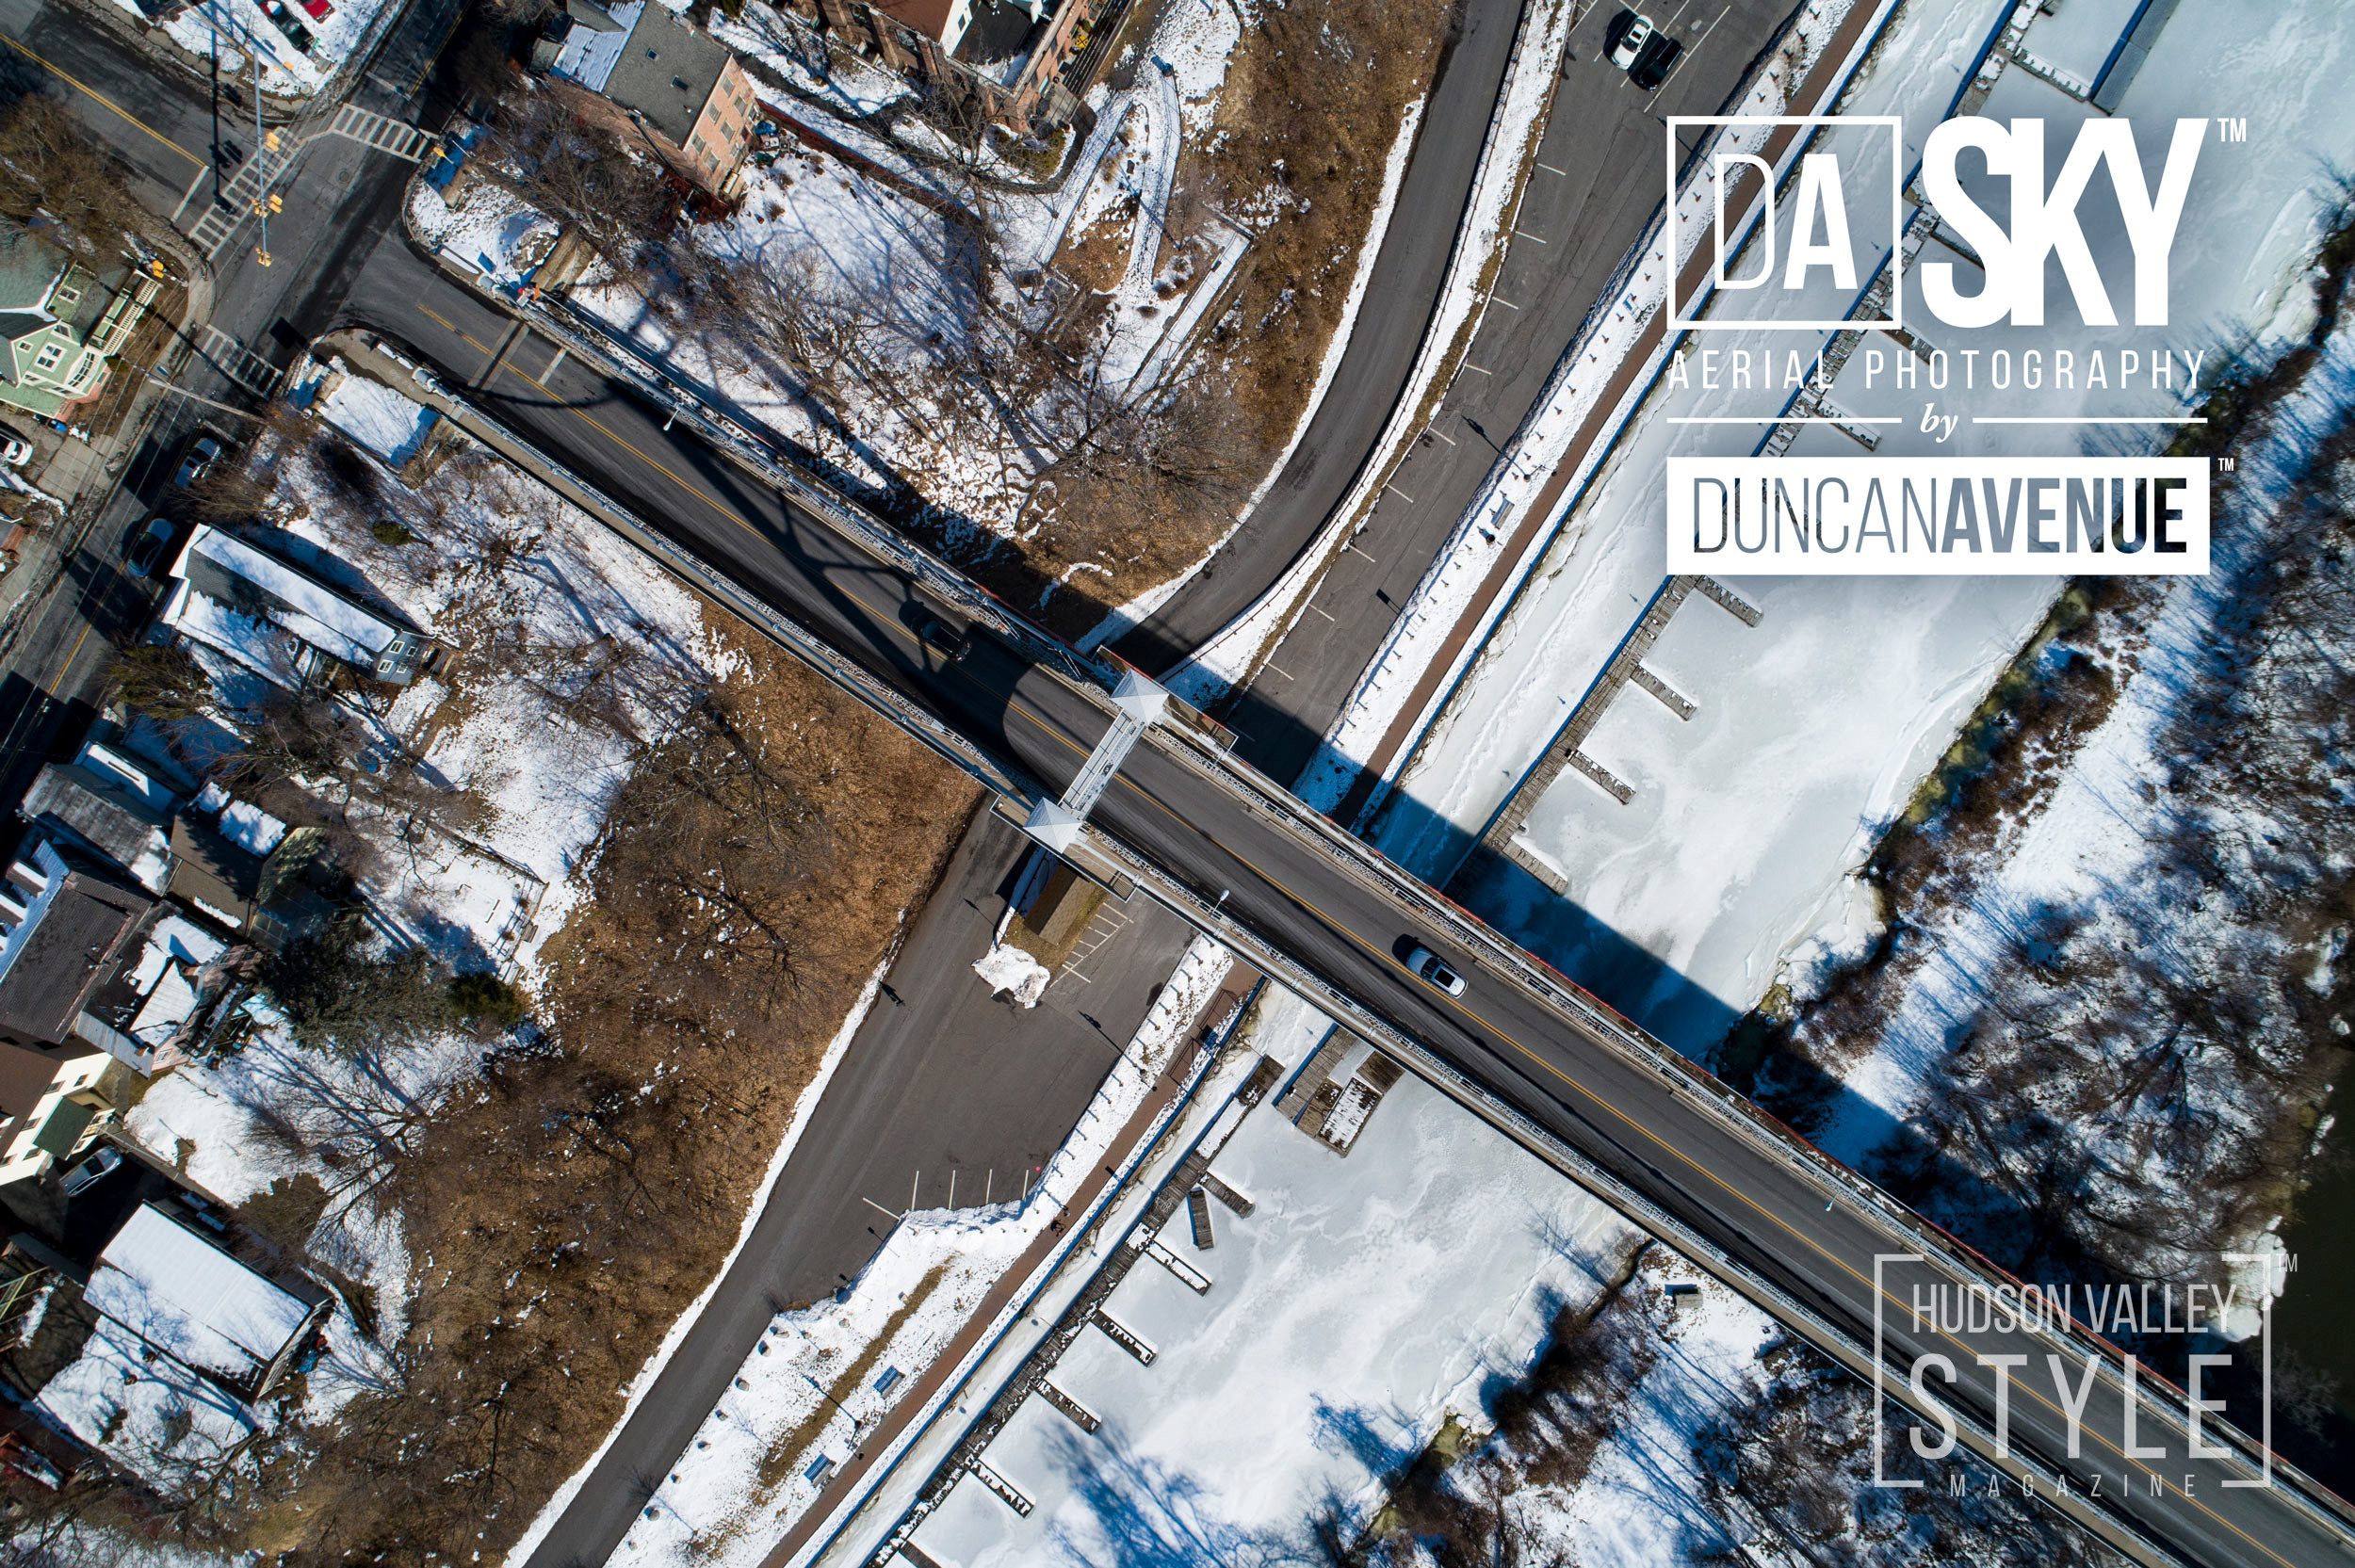 Flying above Kingston – Hudson Valley Aerial Photo Story by Maxwell Alexander